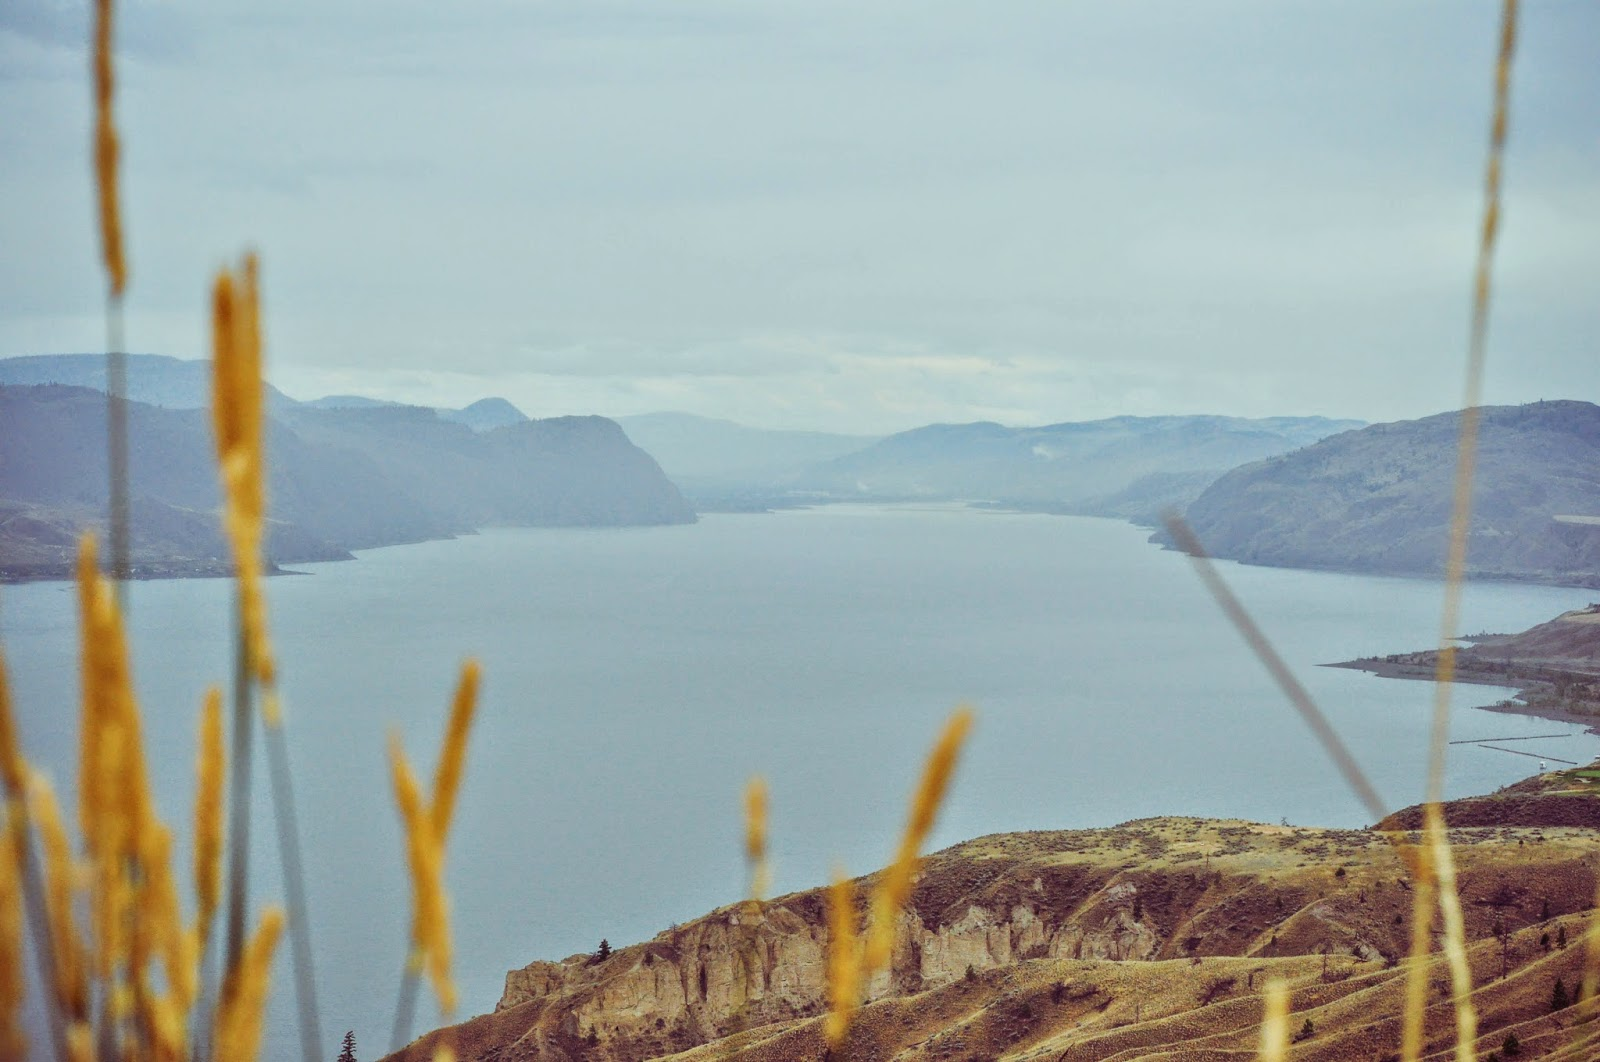 Kamloops lake in British Columbia, Canada.